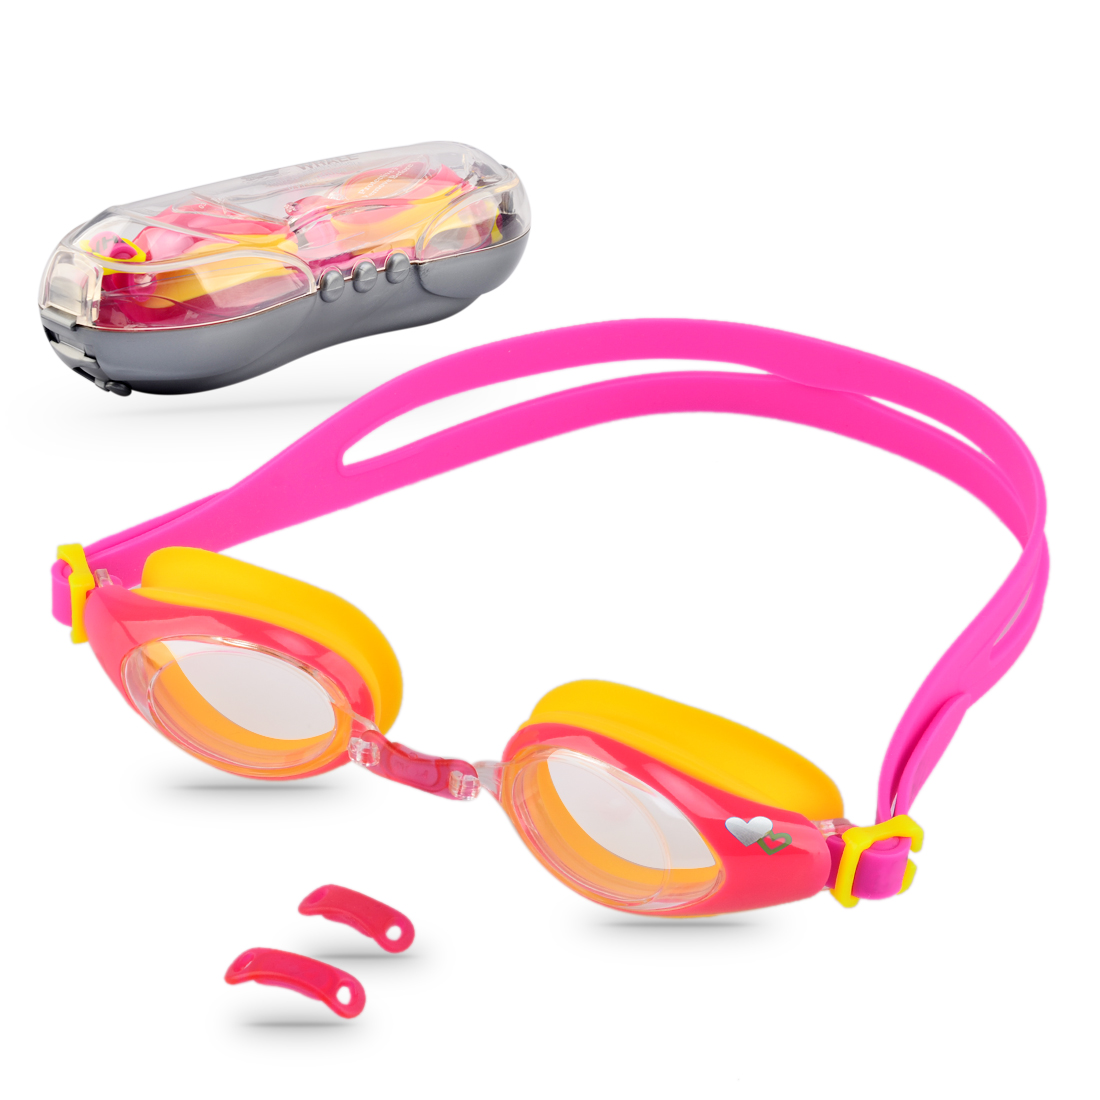 Kids Swim Goggles UV Protection Anti-fog Lens Soft Silicone Frame Child Swimming Goggles Assorted Color 3 by